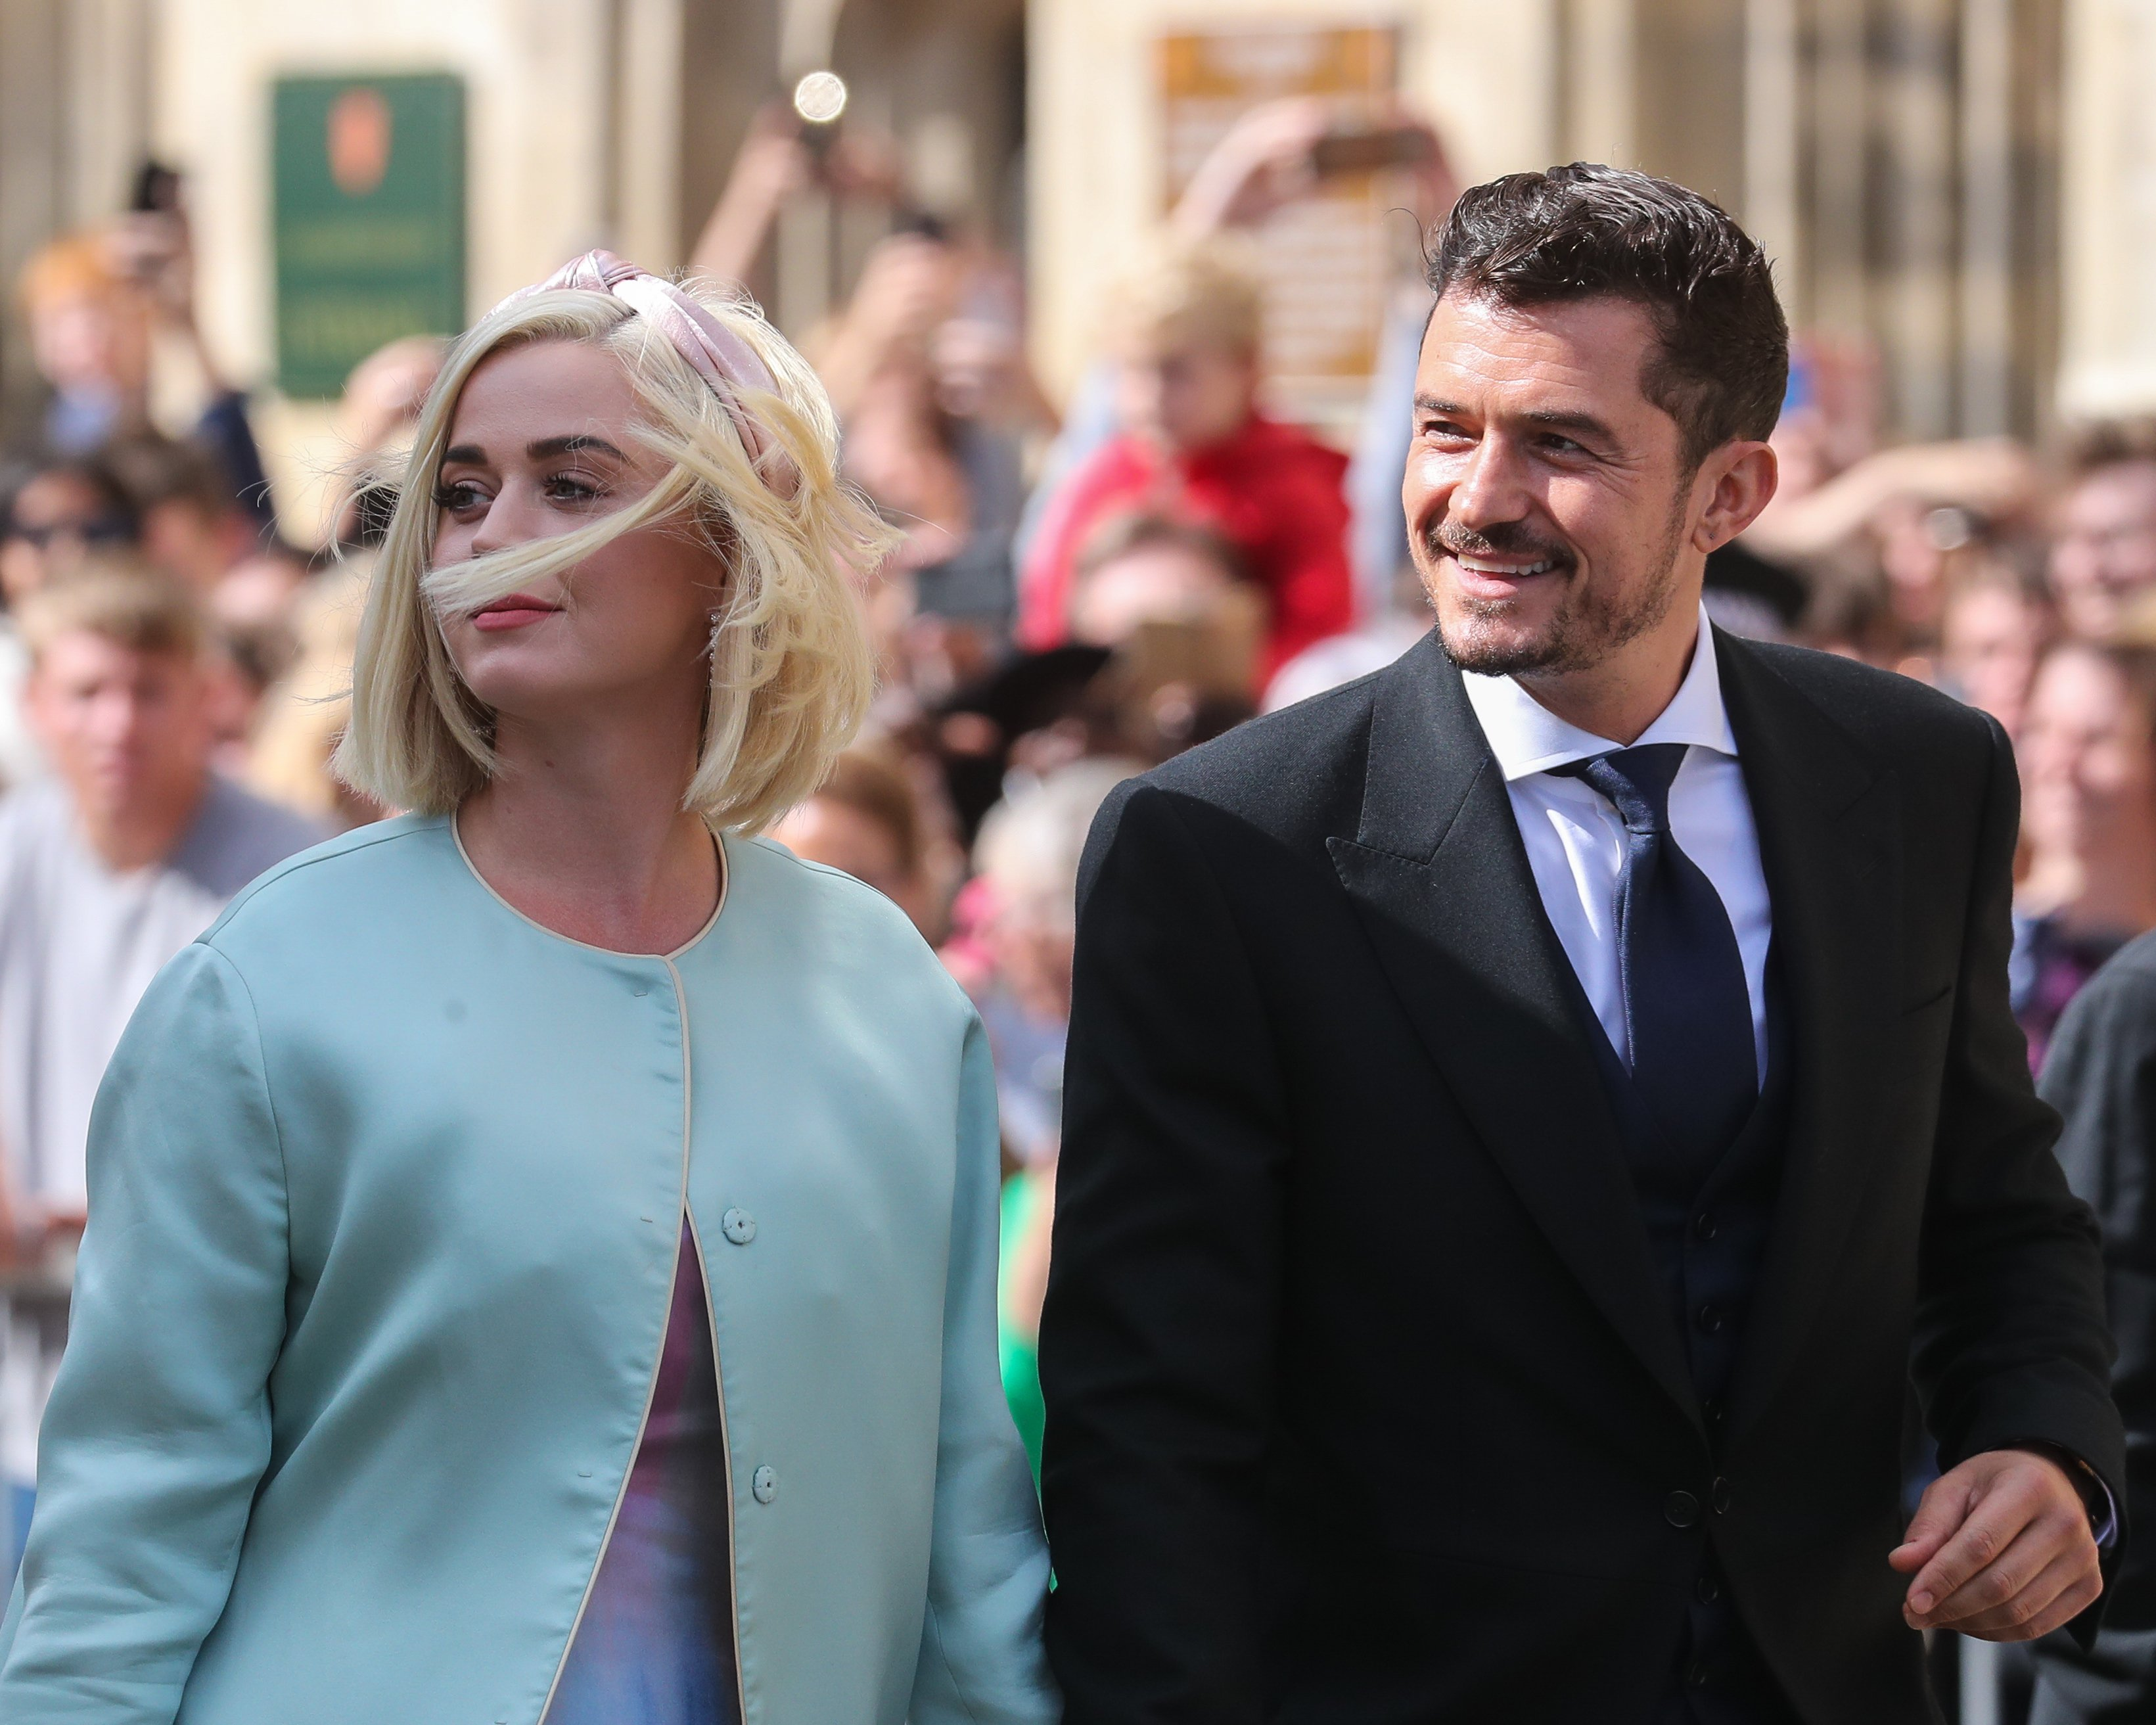 Katy Perry and Orlando Bloom attend Ellie Goulding and Caspar Jopling's wedding on August 31, 2019, in York, England. | Source: Getty Images.